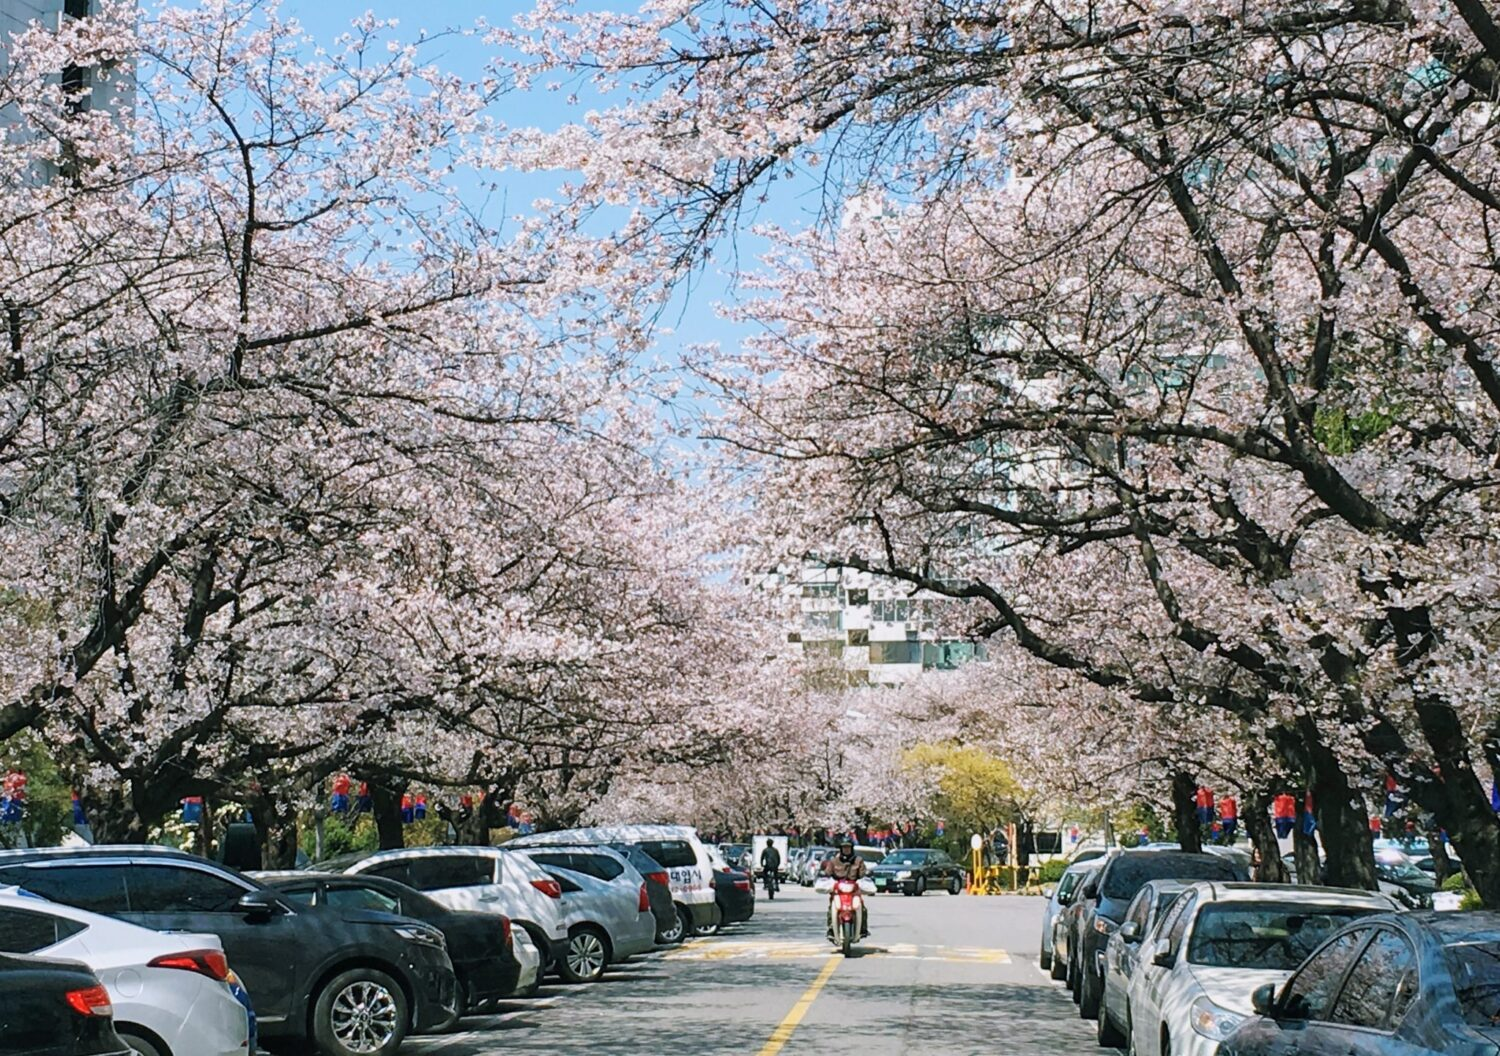 cherry blossom trees in jamsil korea